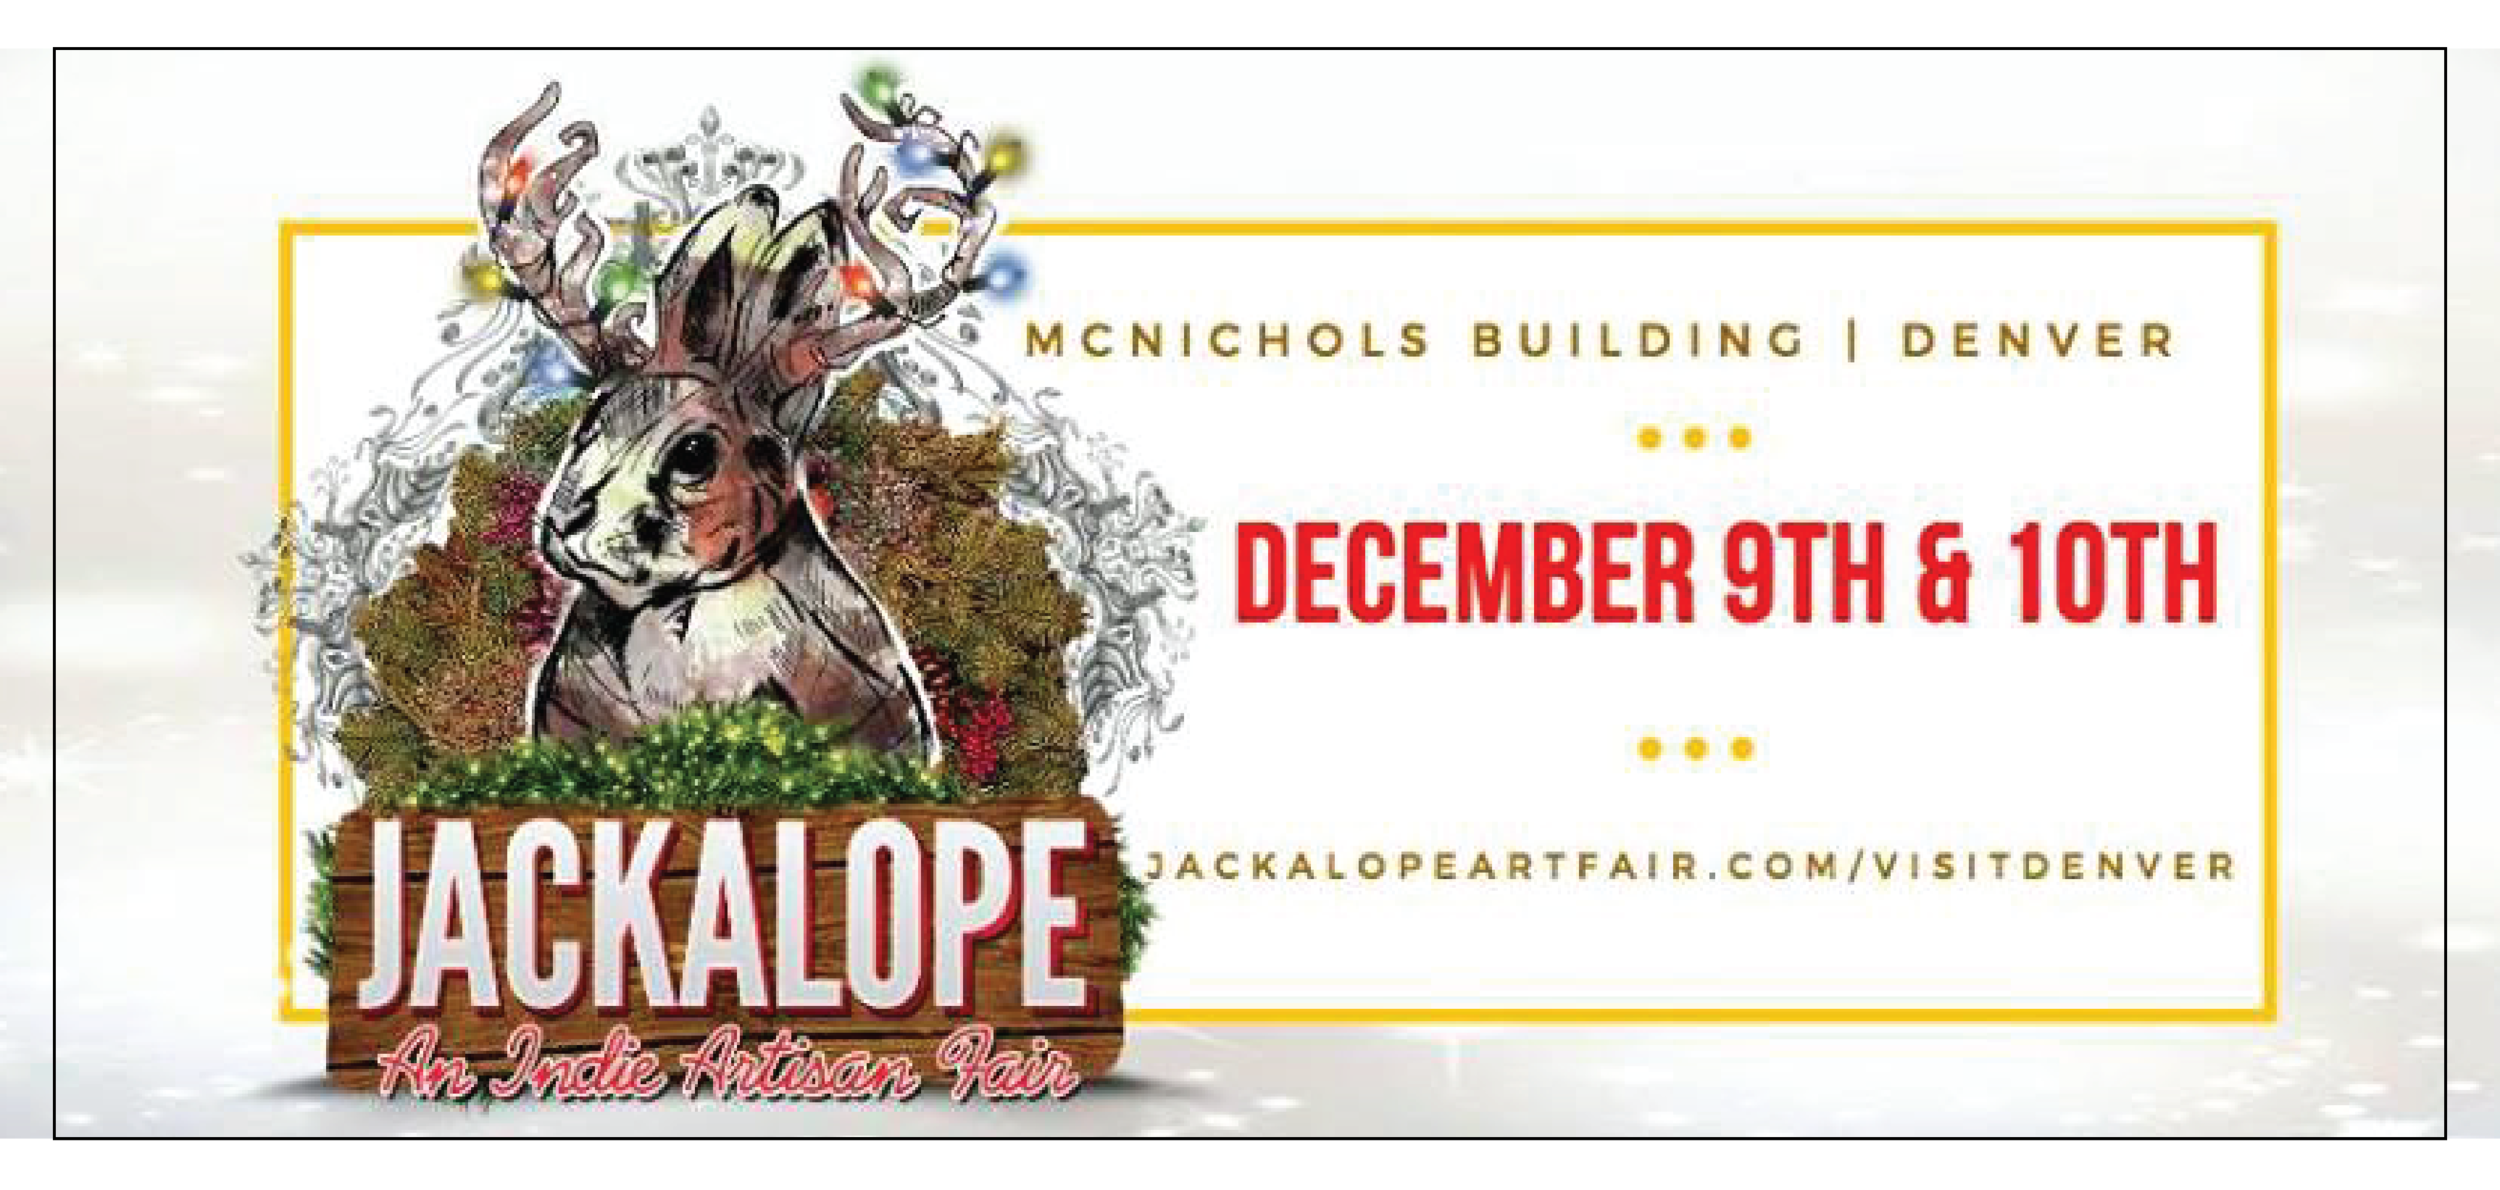 Join me at the Jackalope Indie Artisan Fair on December 9th & 10th at the McNichols Building at Civic Center Park in Denver. The building will be packed with one-of-a-kind items from one-of-a-kind artisans! Come early to pick up one of my Wraps, Cocoons or Shrugs before they all sell out again!